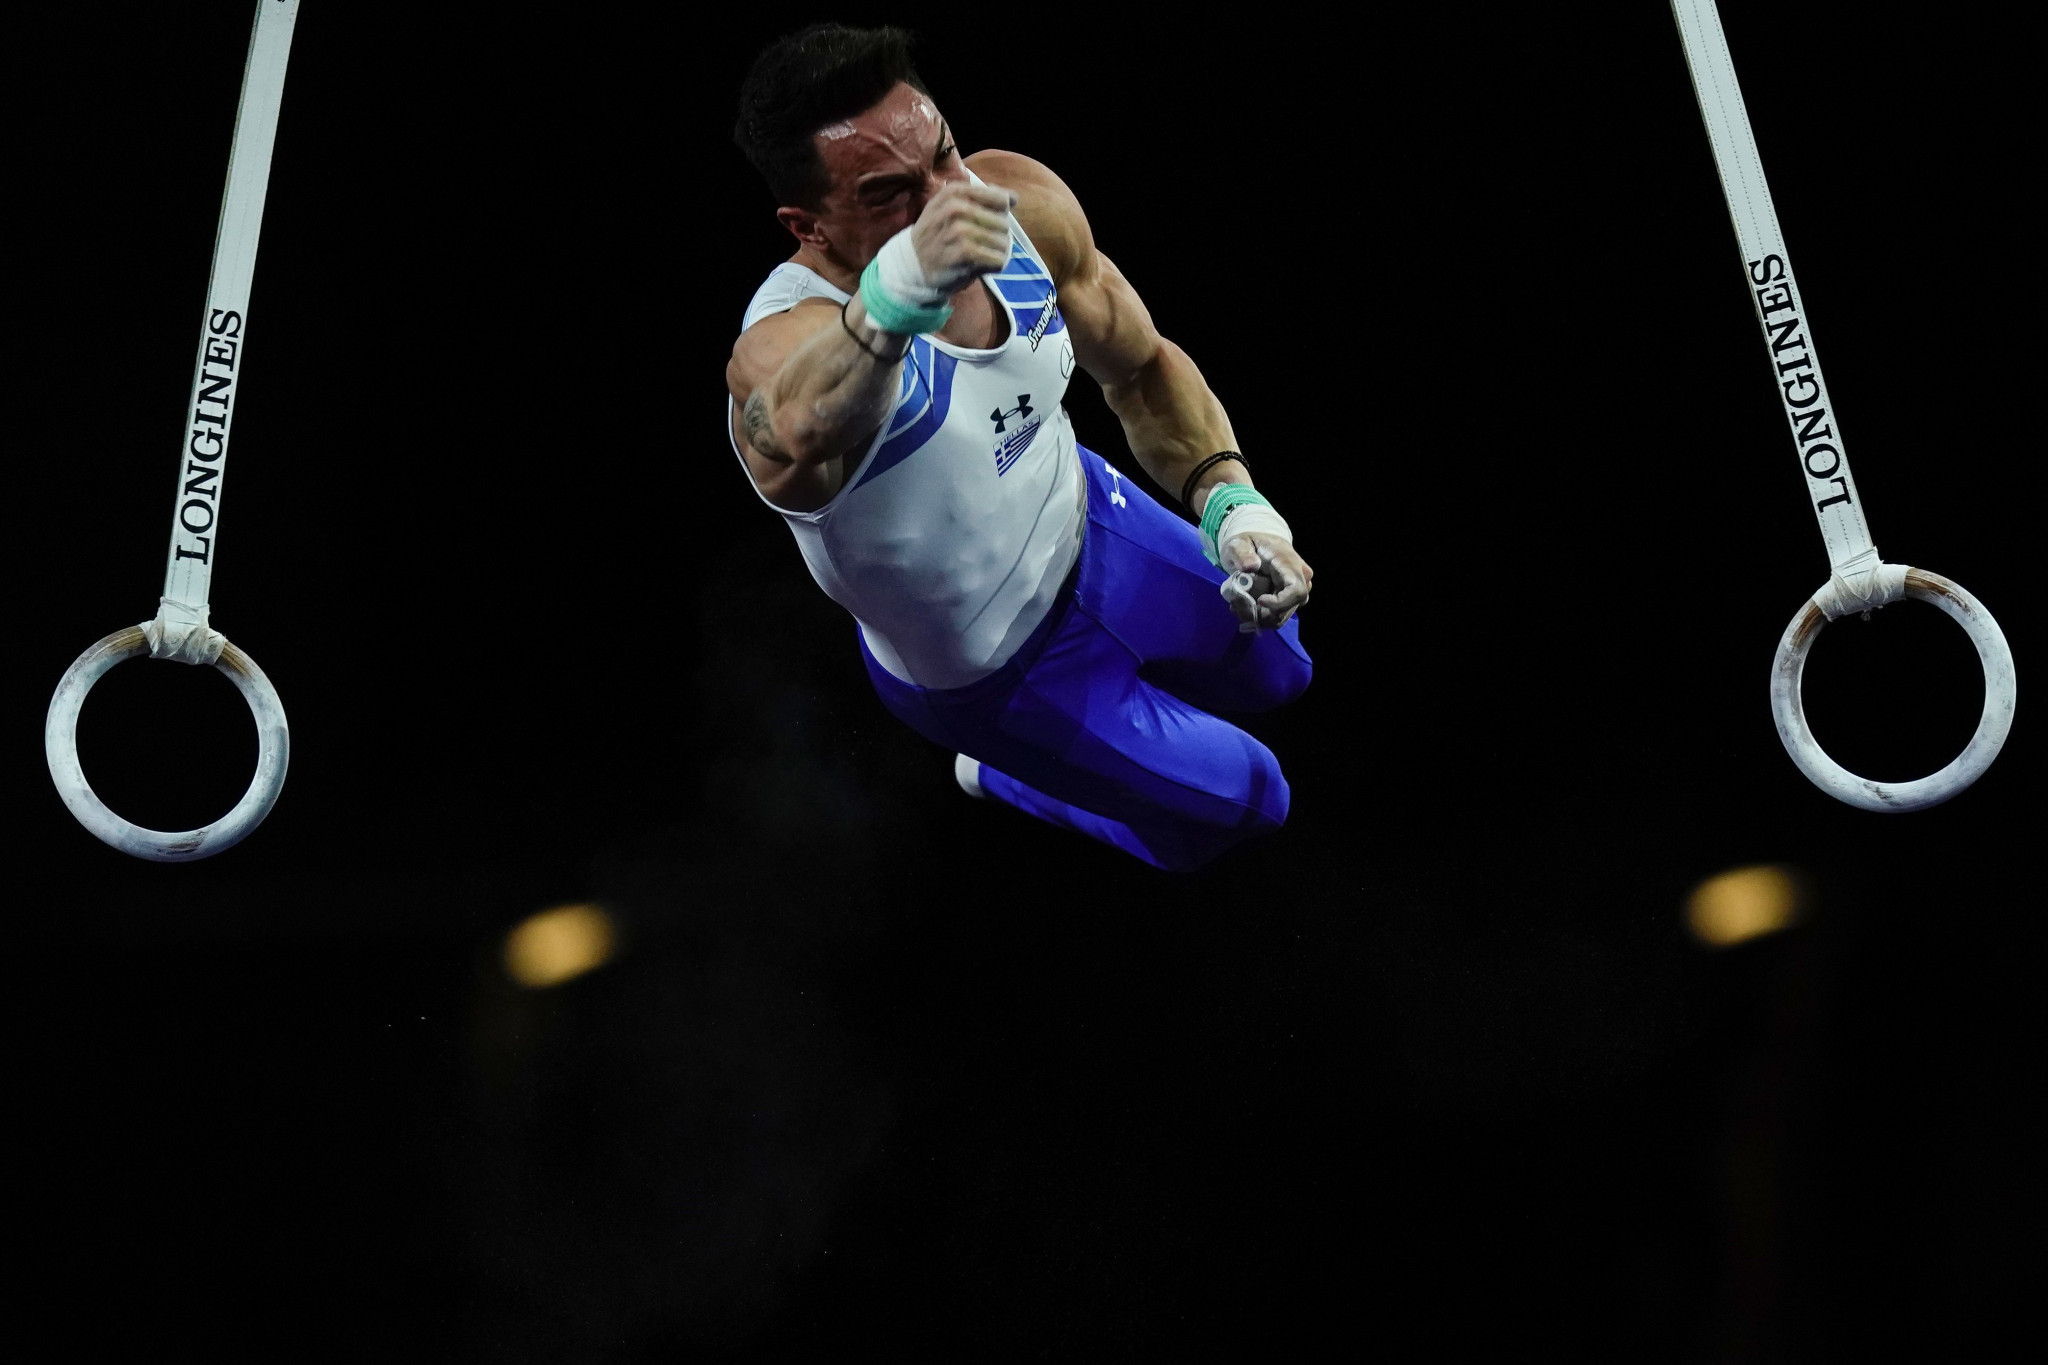 Olympic champion Petrounias tops rings qualification at FIG Apparatus World Cup